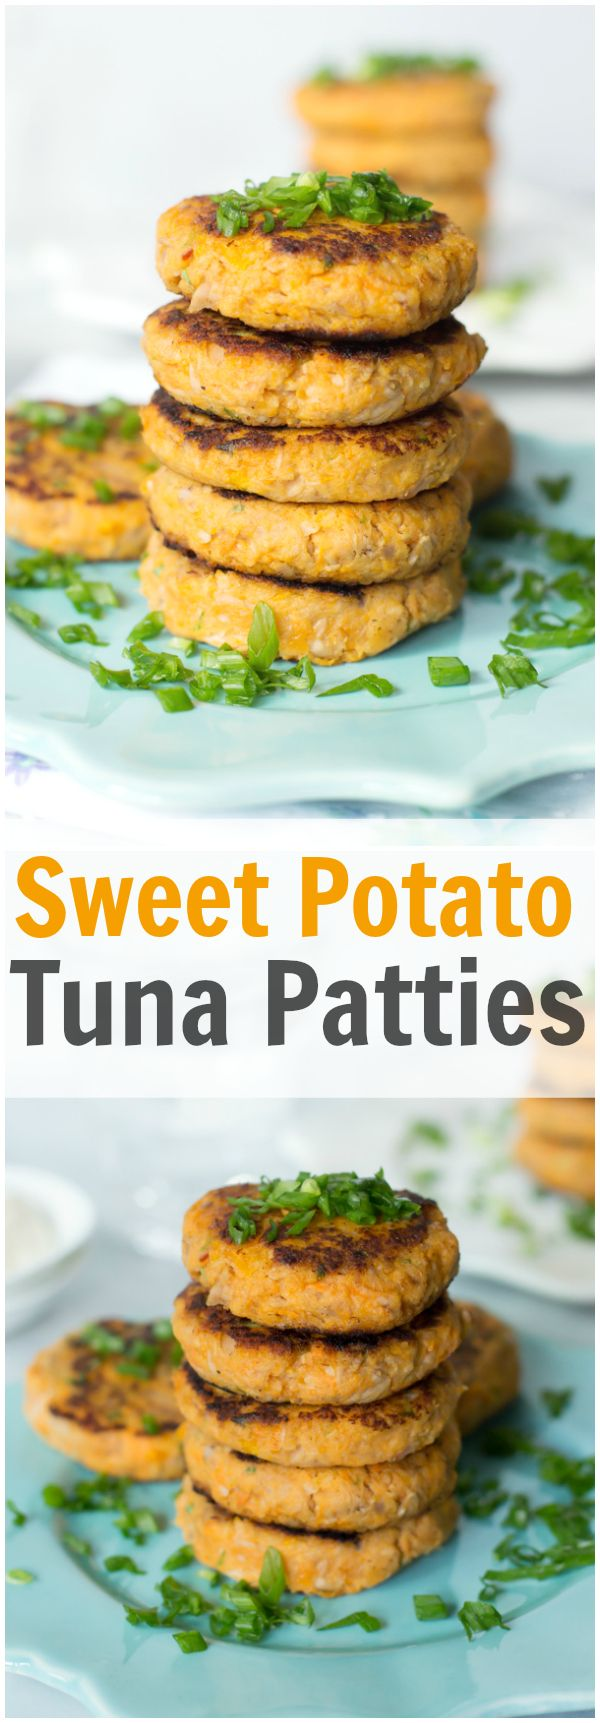 This Sweet Potato Tuna patties are very soft inside and crispy from the outside. It is delicious, easy, quick and healthy appetizer recipe! primaverakitchen.com